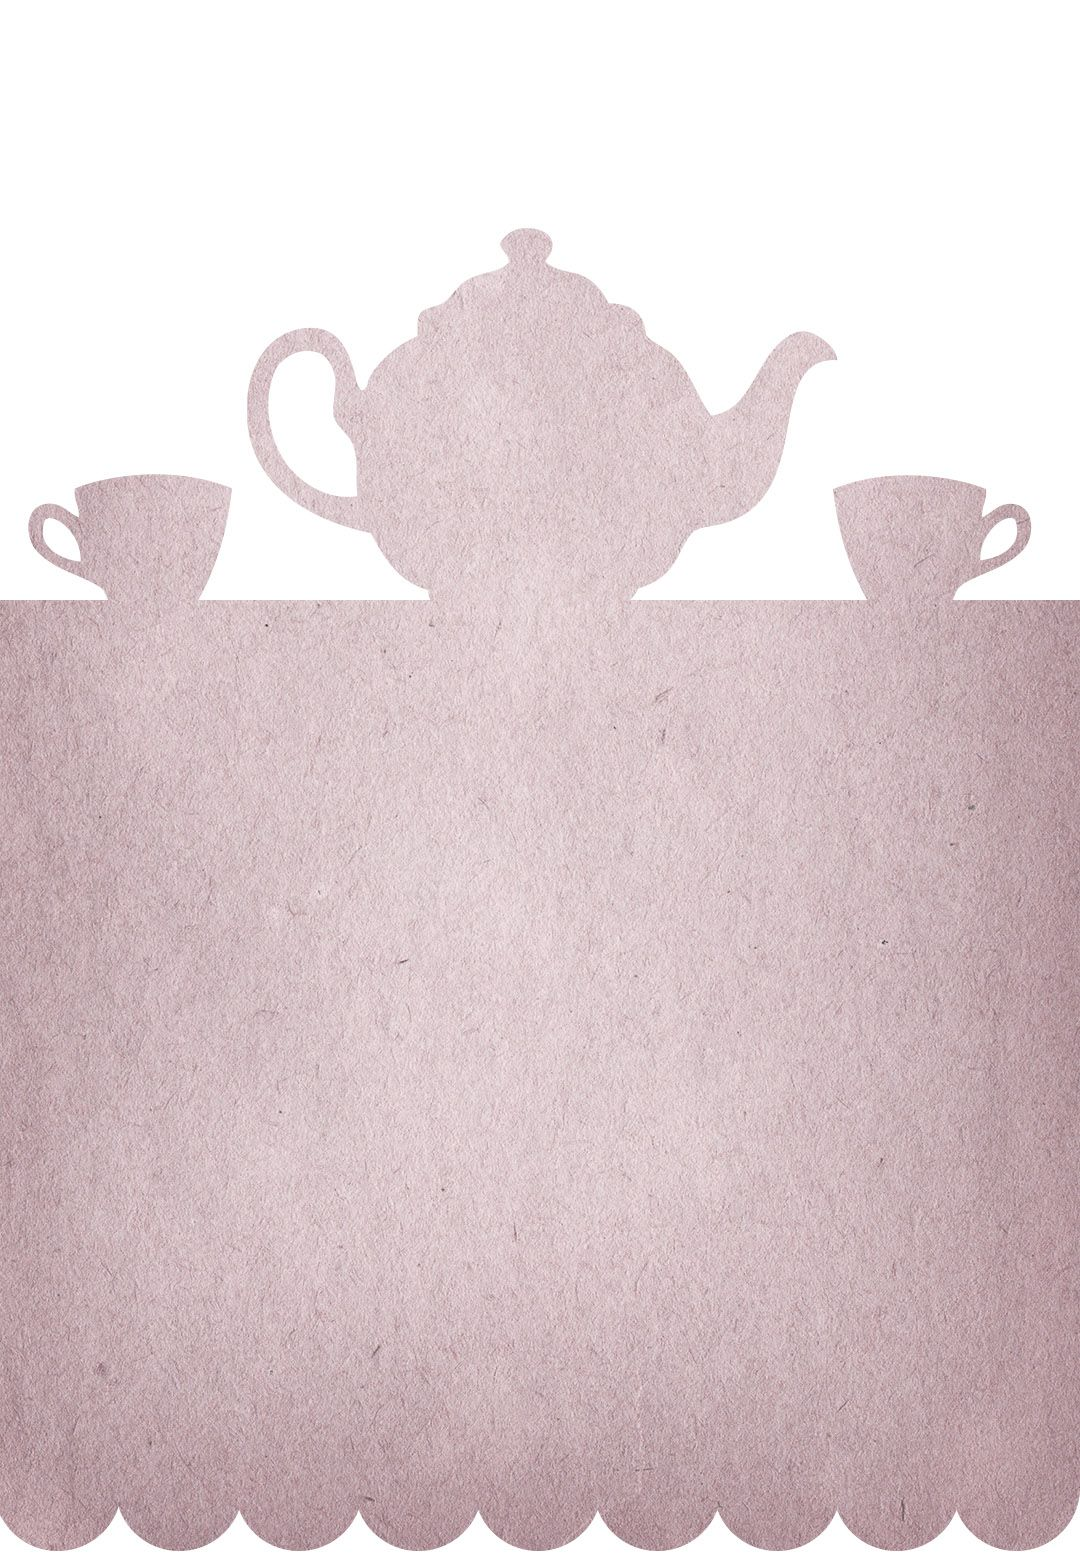 Free Printable Tea Party Invitation | Communication | Pinterest ...